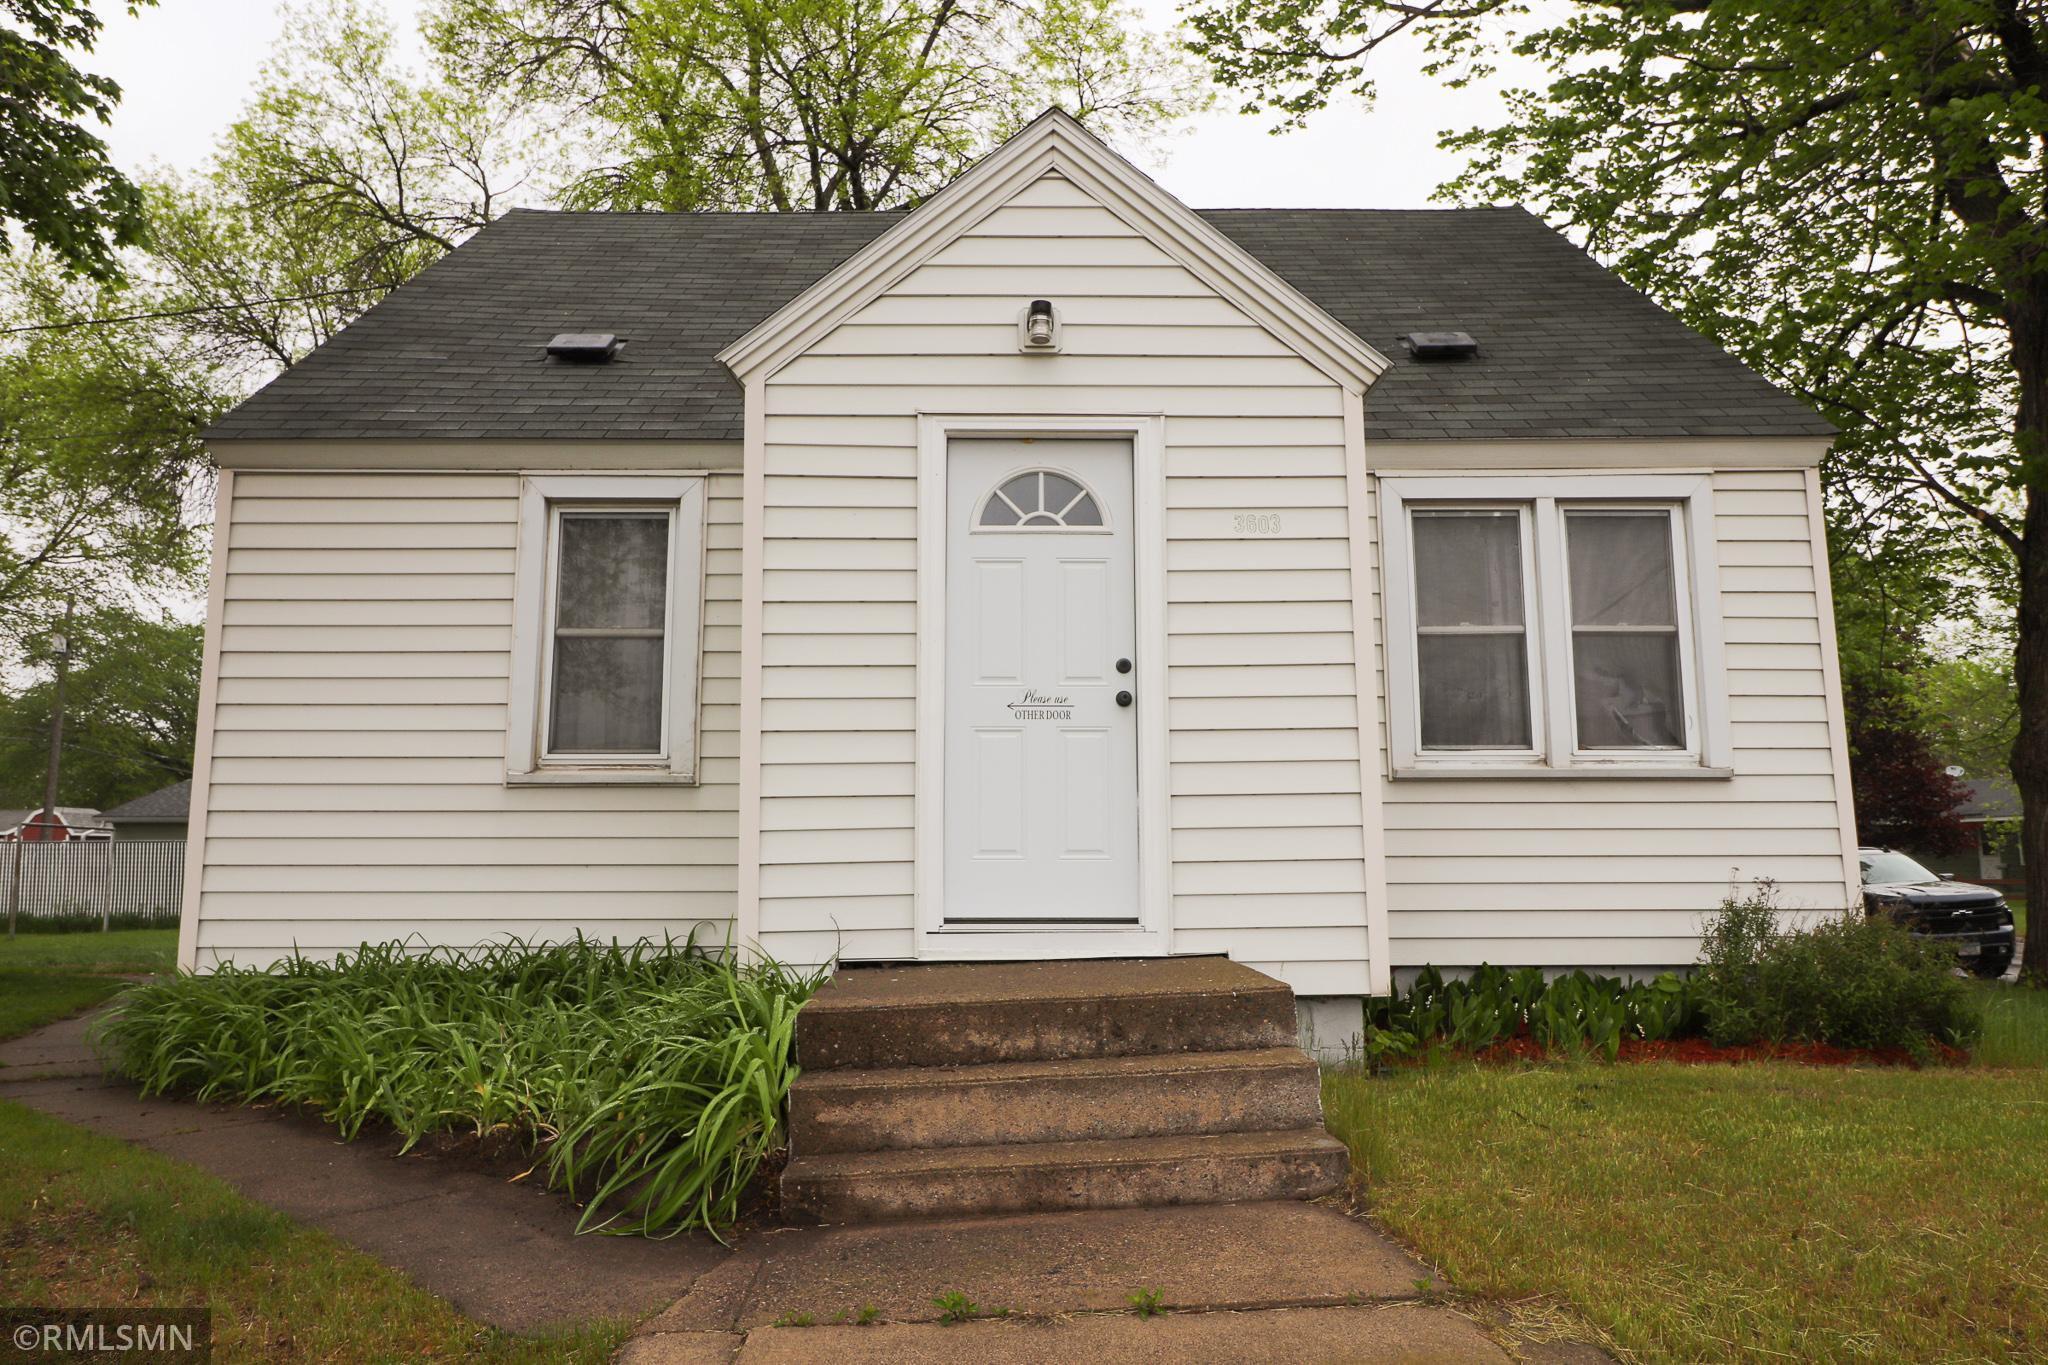 Tired of Renting? Here is a 2 bed, 1 bath, 2 owner mid-century home on a large corner lot that has 3 off street parking spaces and a garage. This home has loads of potential for the right buyer. Convenient centralized location makes getting anywhere in St Cloud easy. Priced lower than most rentals. Could also be a great investment property.  New sewer lines installed by the city in 2020.